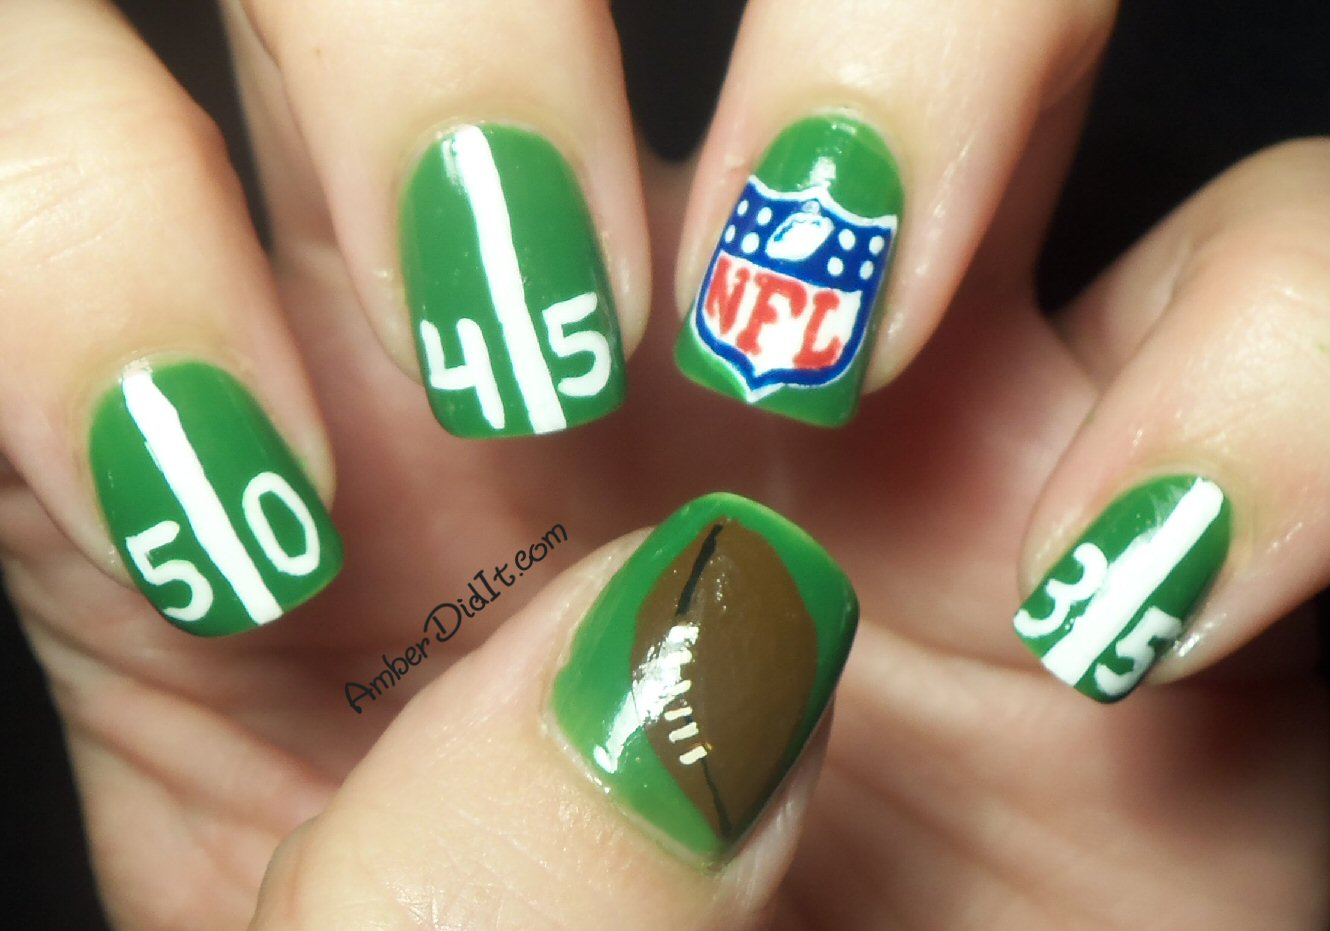 Amber did it!: Are You Ready For Some Football?